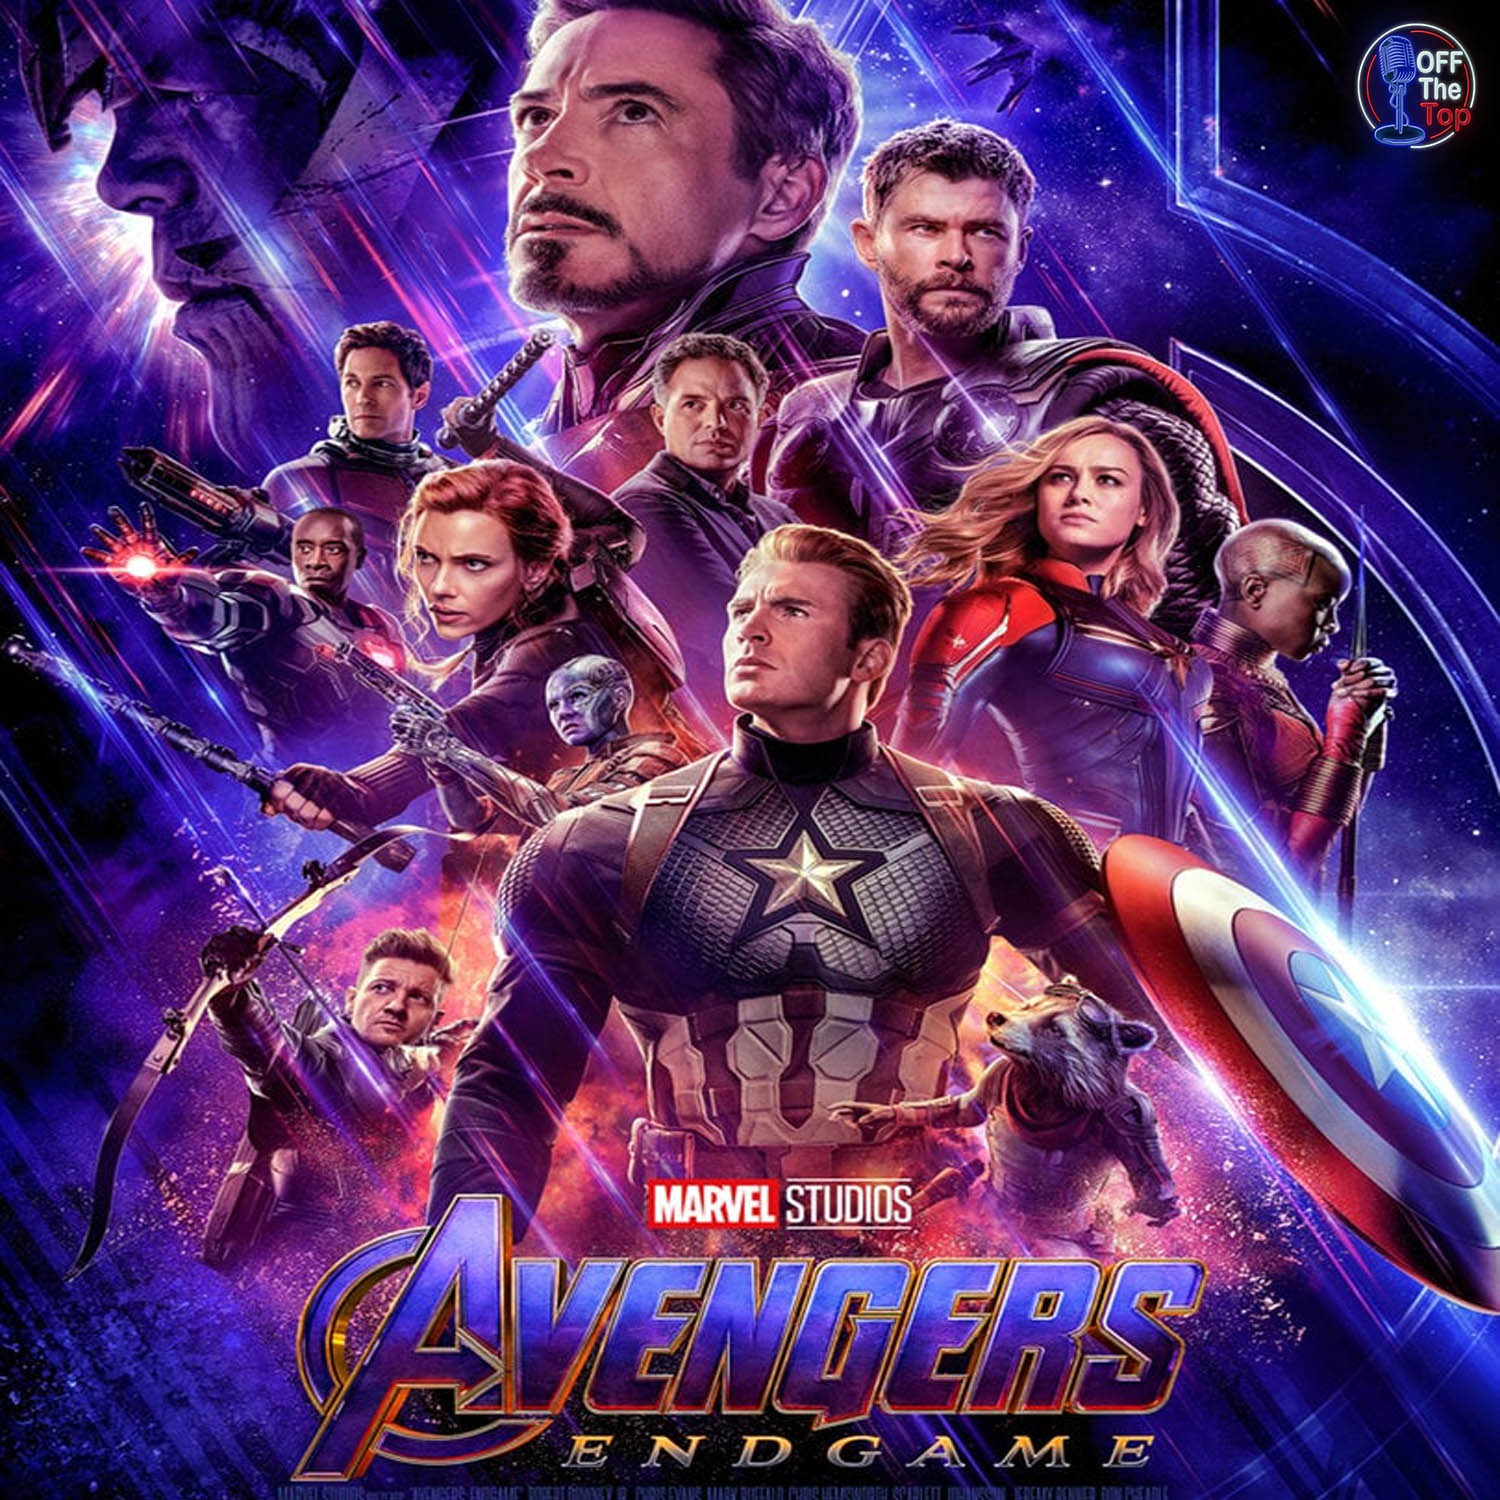 Avengers Endgame Breakdown and Review with SPOILERS